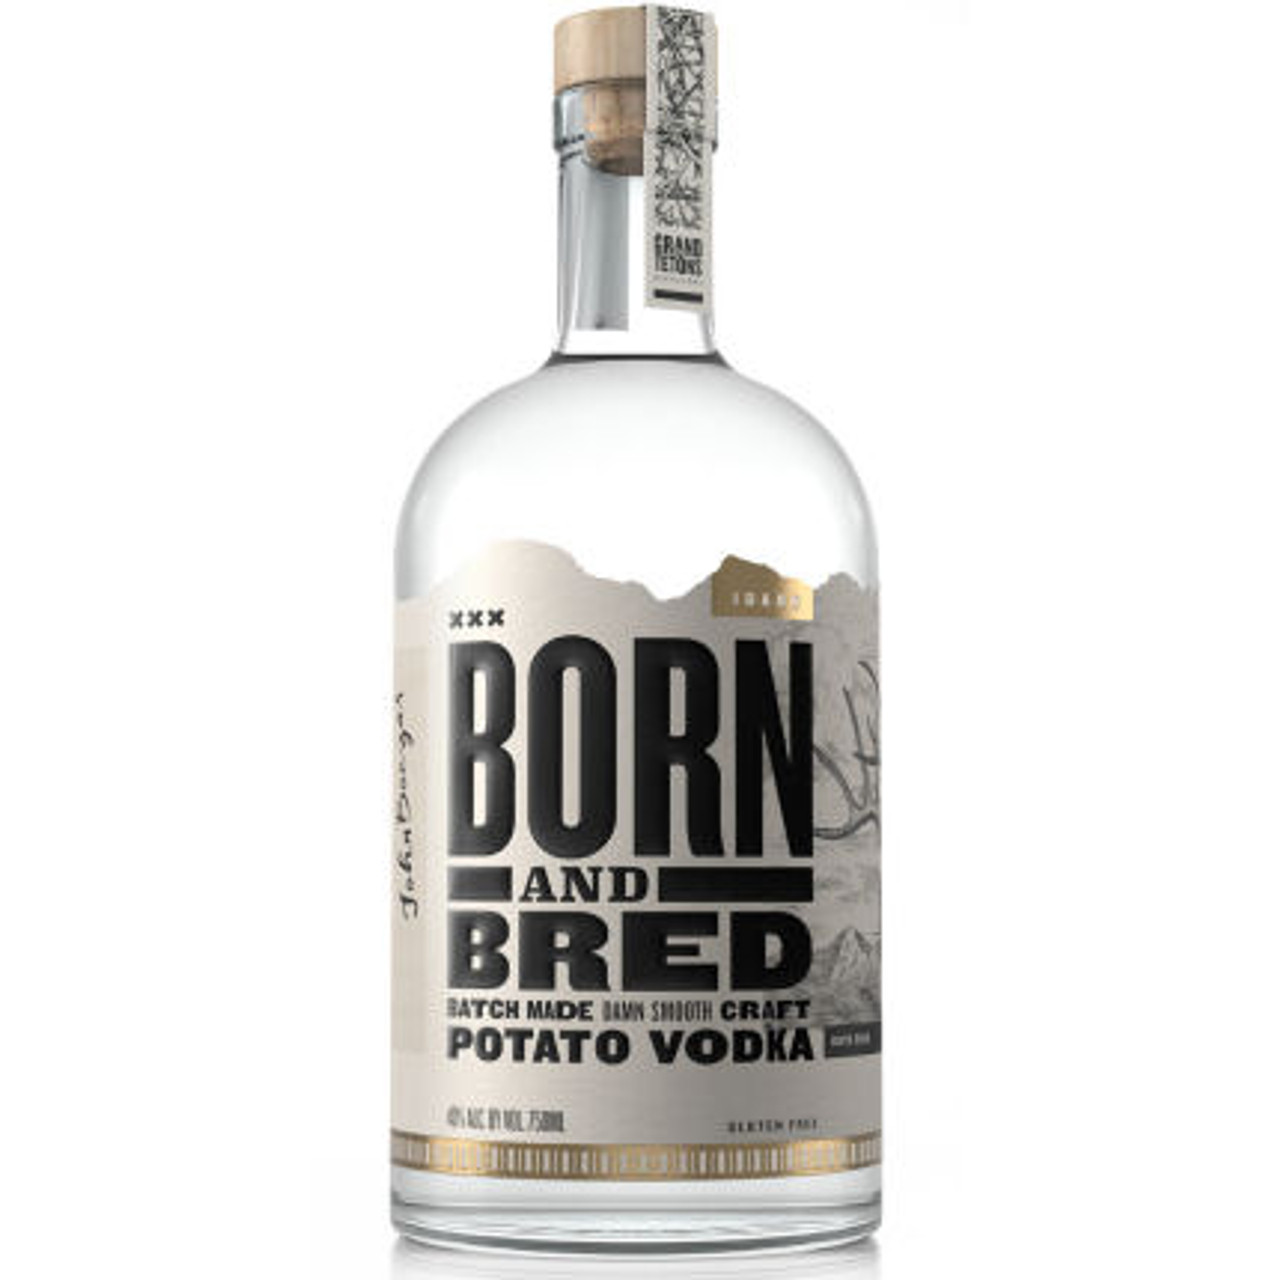 Born and Bred Batch Made Craft Idaho Potato Vodka 750ml